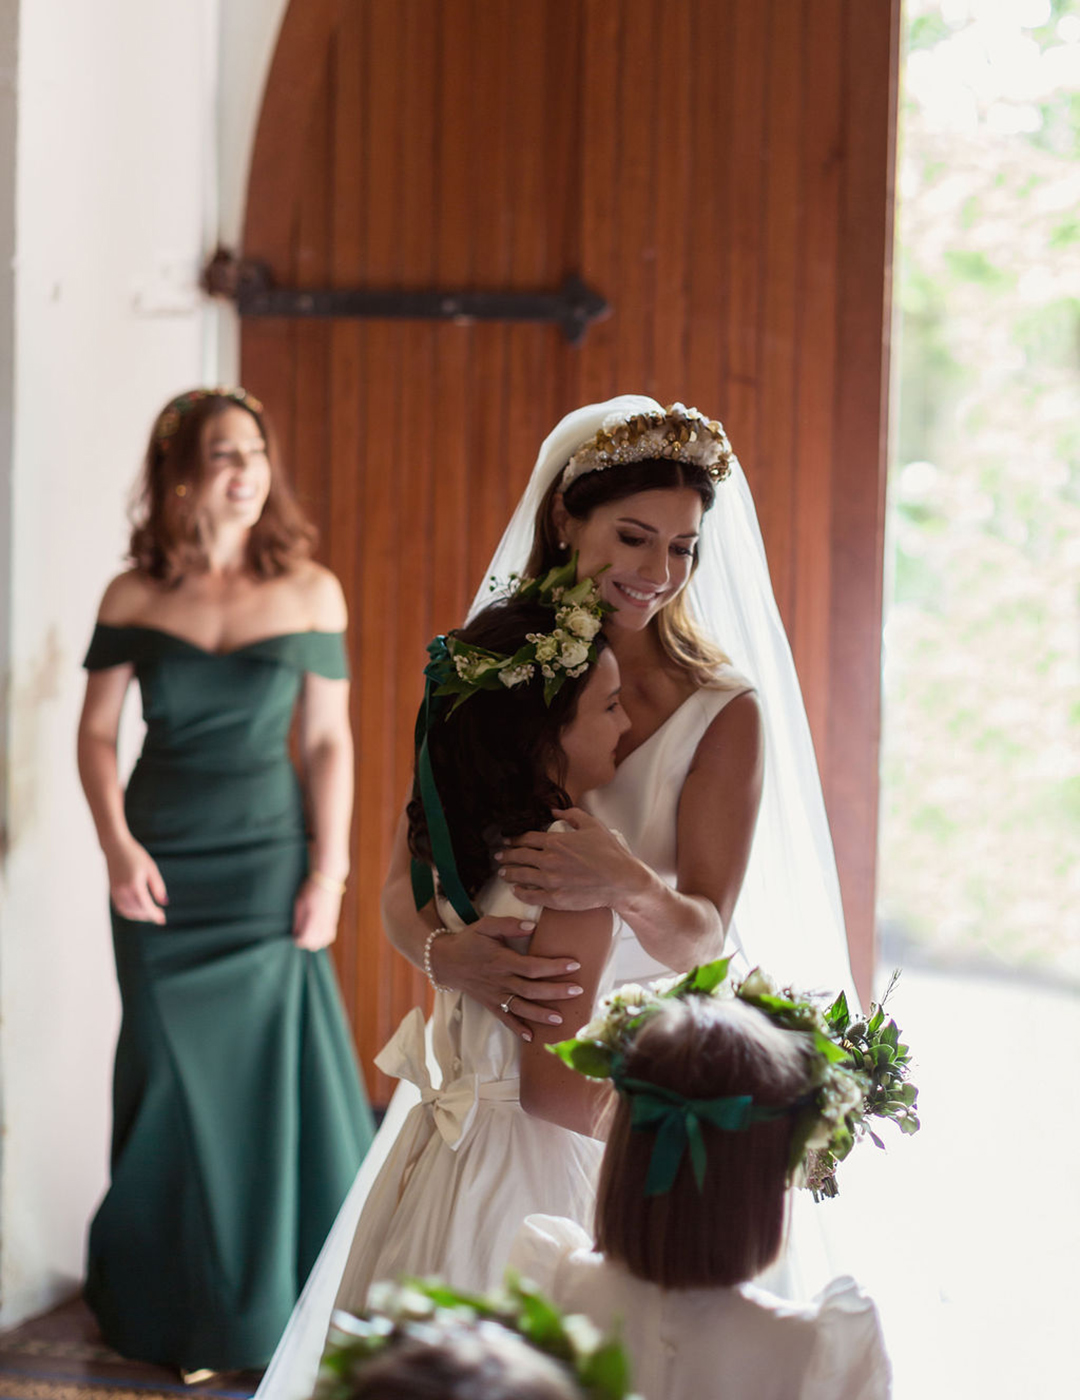 Destination Wedding Ireland, Olivia Buckley Wedding, Wedding Planner Ireland, Olivia Buckley International